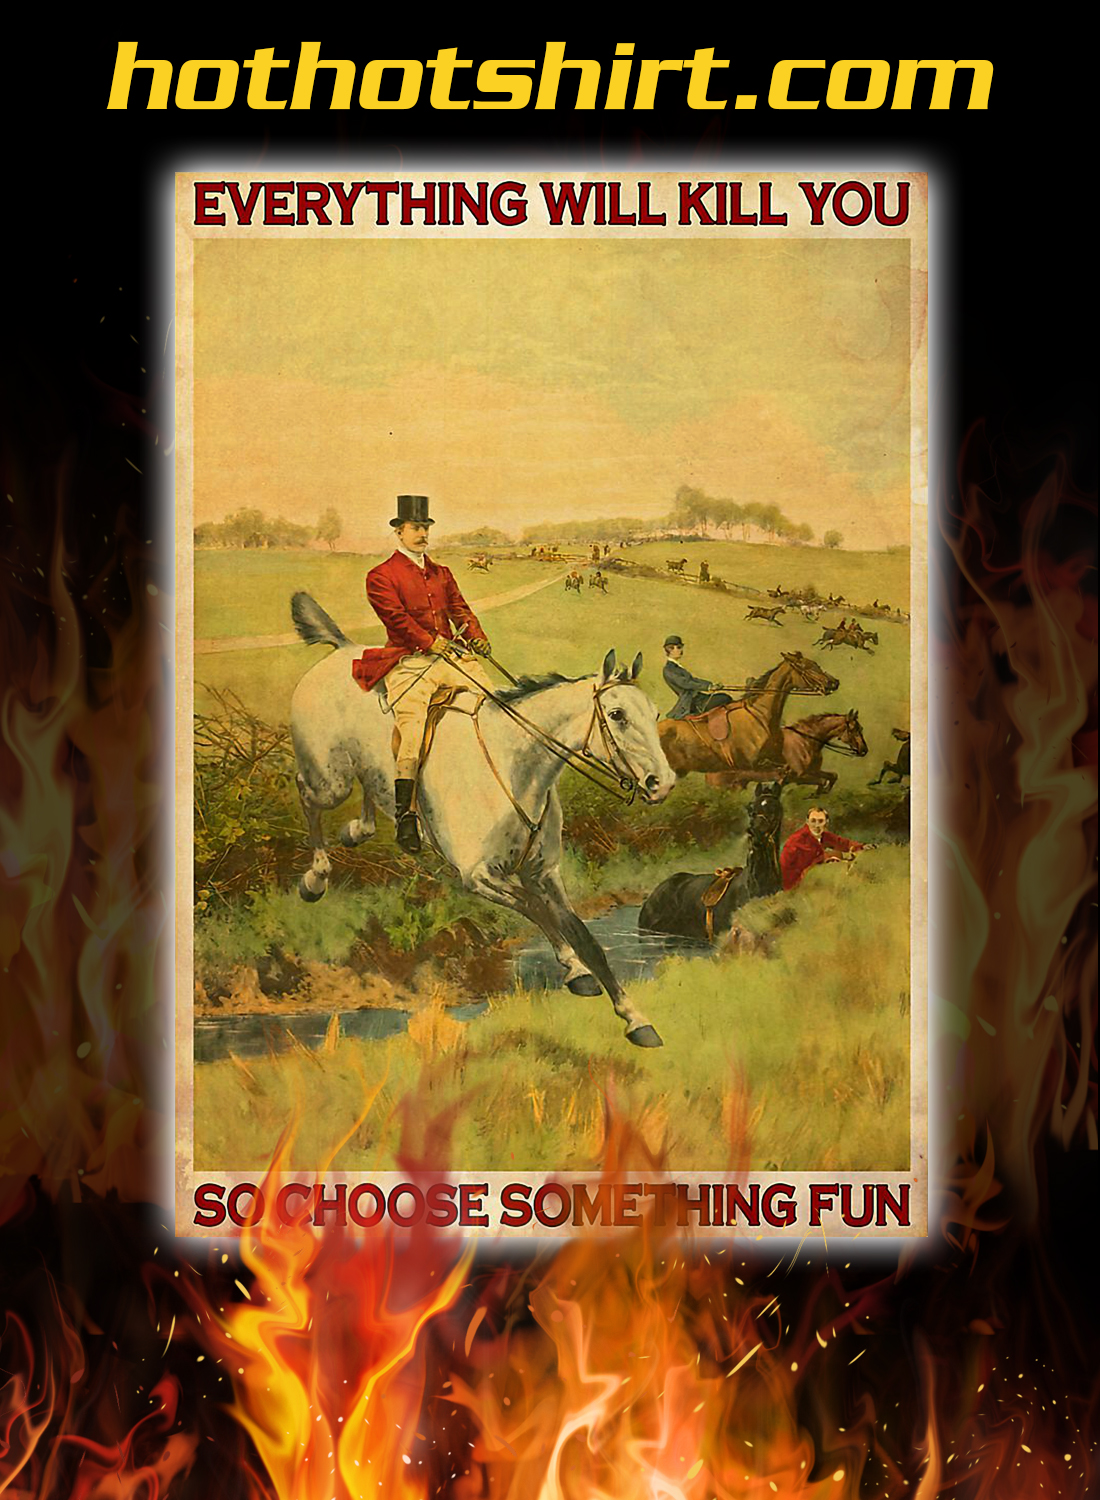 Fox hunting everything will kill you so choose something fun poster 2